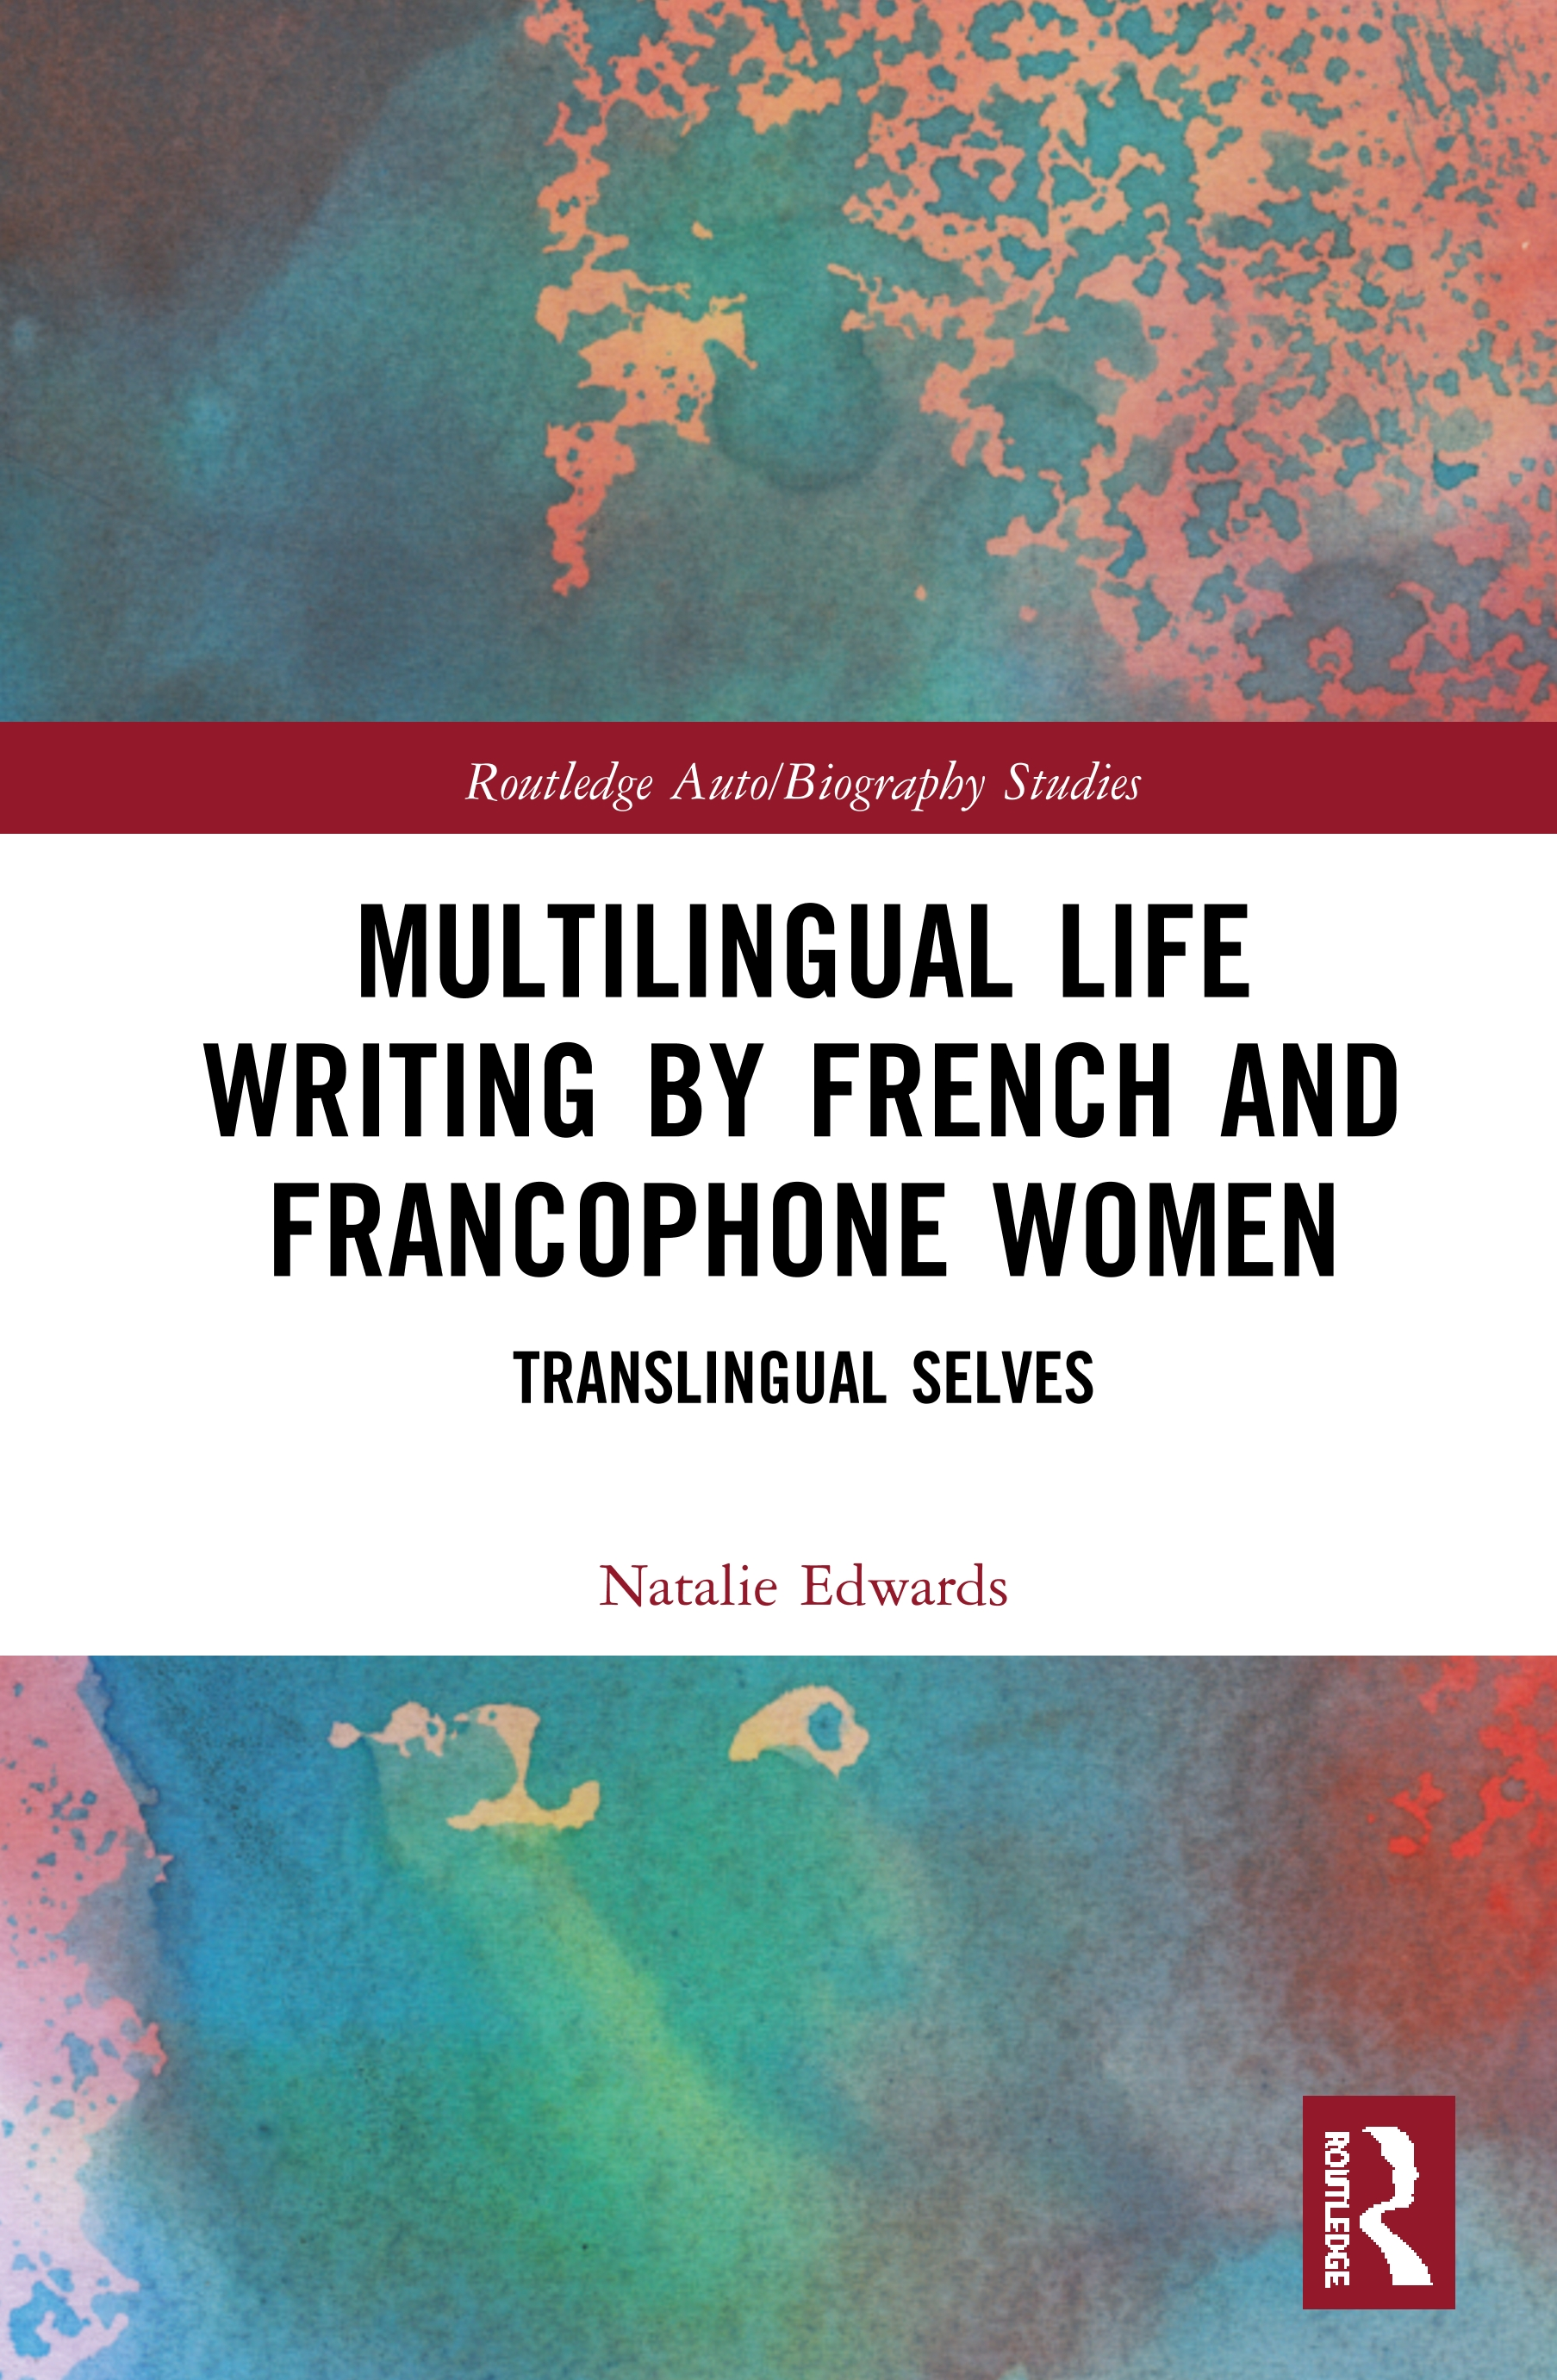 Multilingual Life Writing by French and Francophone Women: Translingual Selves book cover